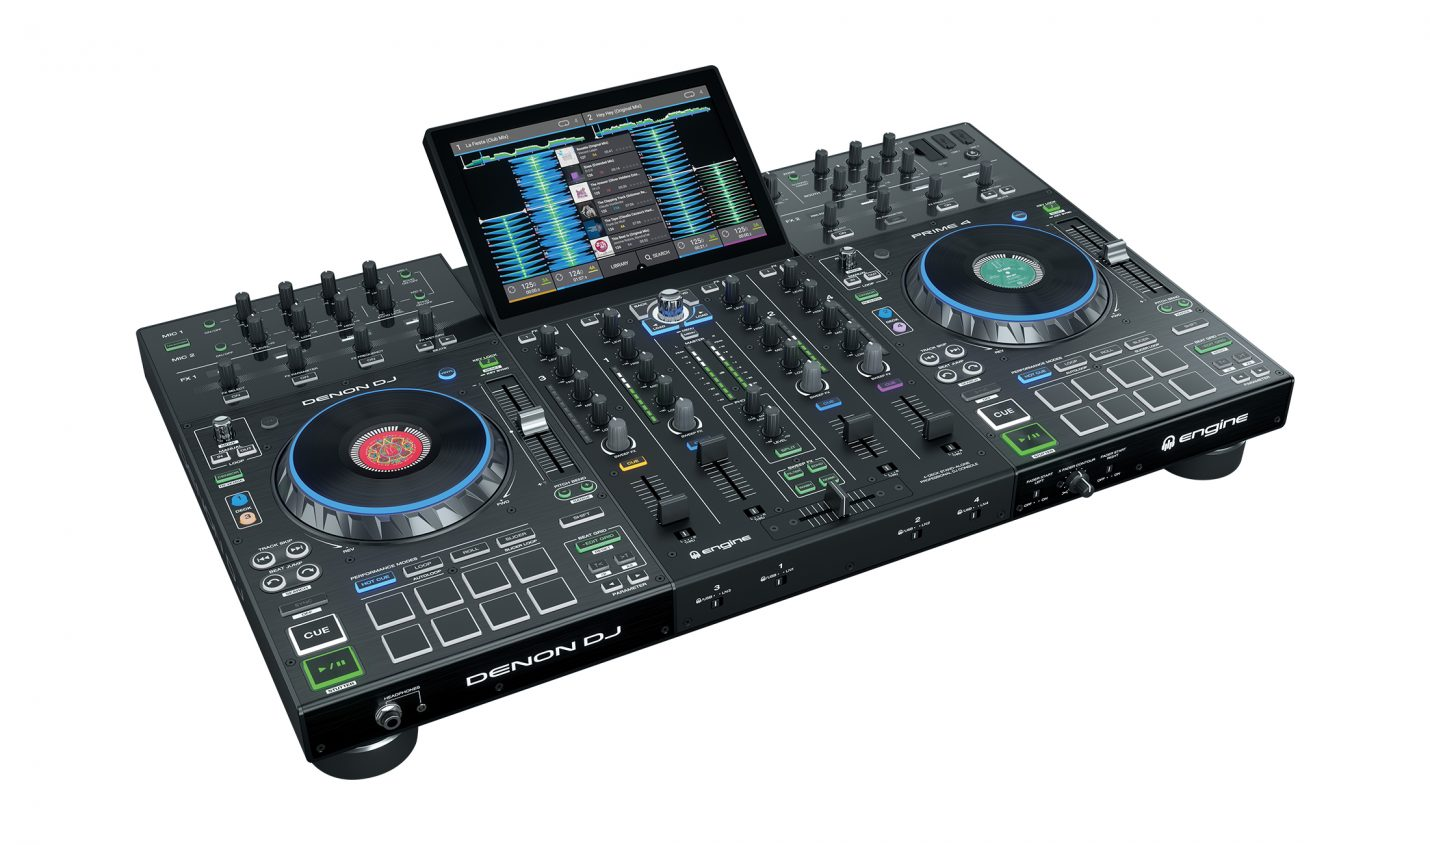 Test: Denon DJ Prime 4 – Standalone Workstation